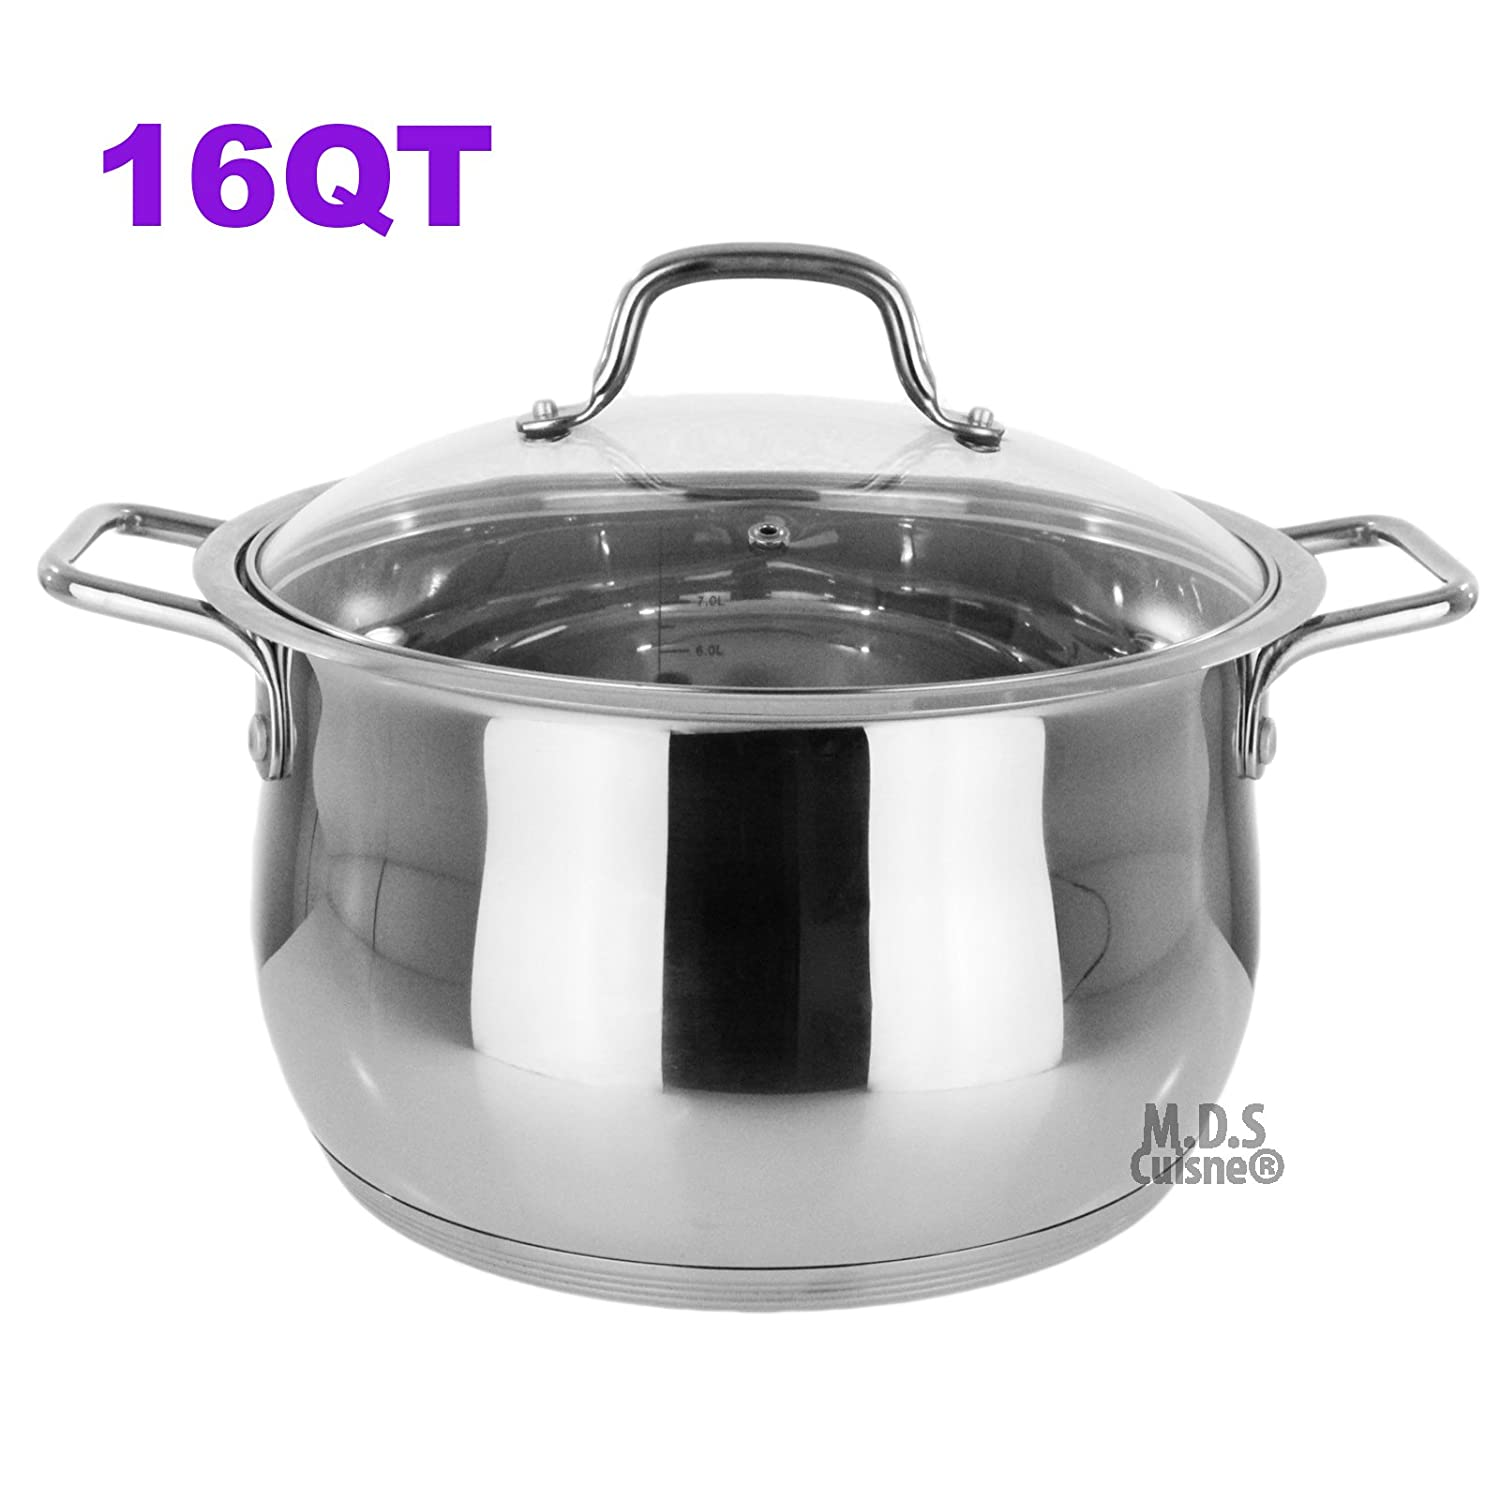 Stockpot 16 Qt Stainless Steel Commercial Tri-Ply Capsule Bottom Dutch Oven Stock Pot